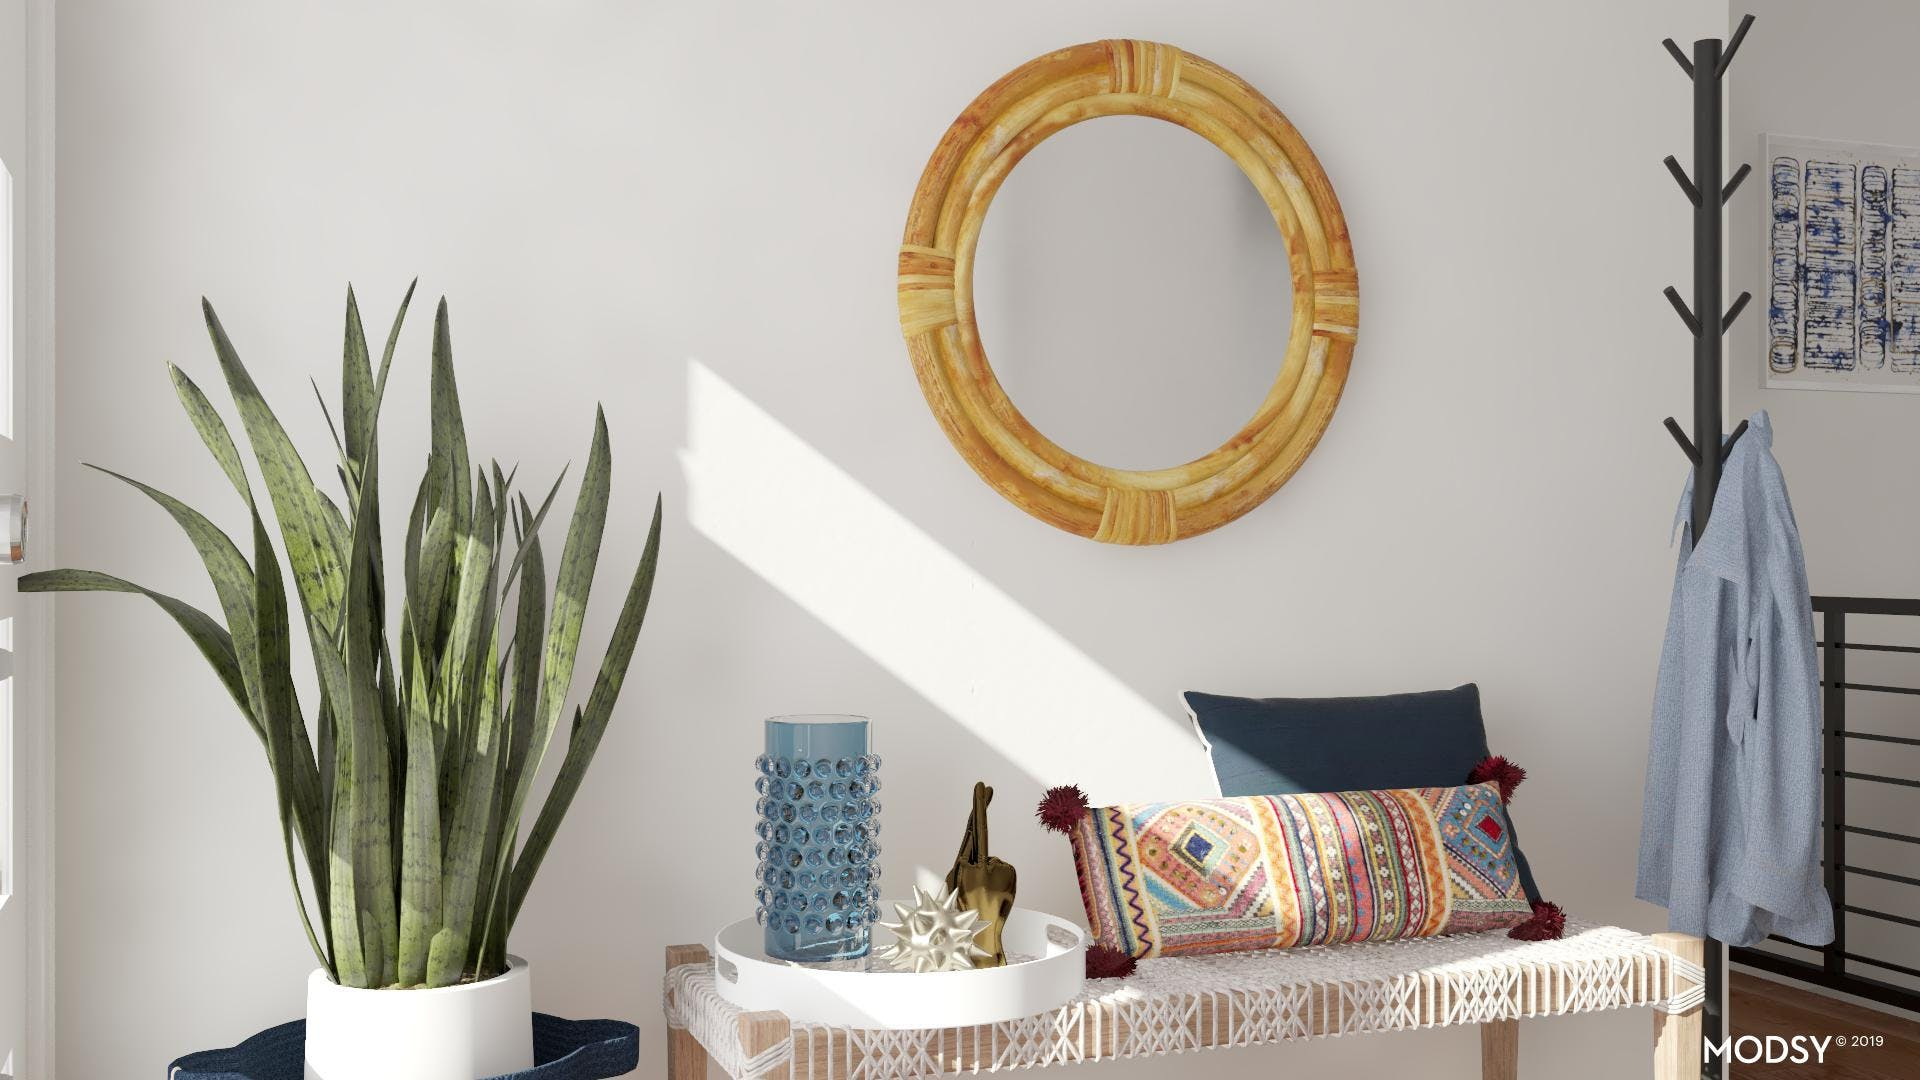 Eclectic Accessory Styling